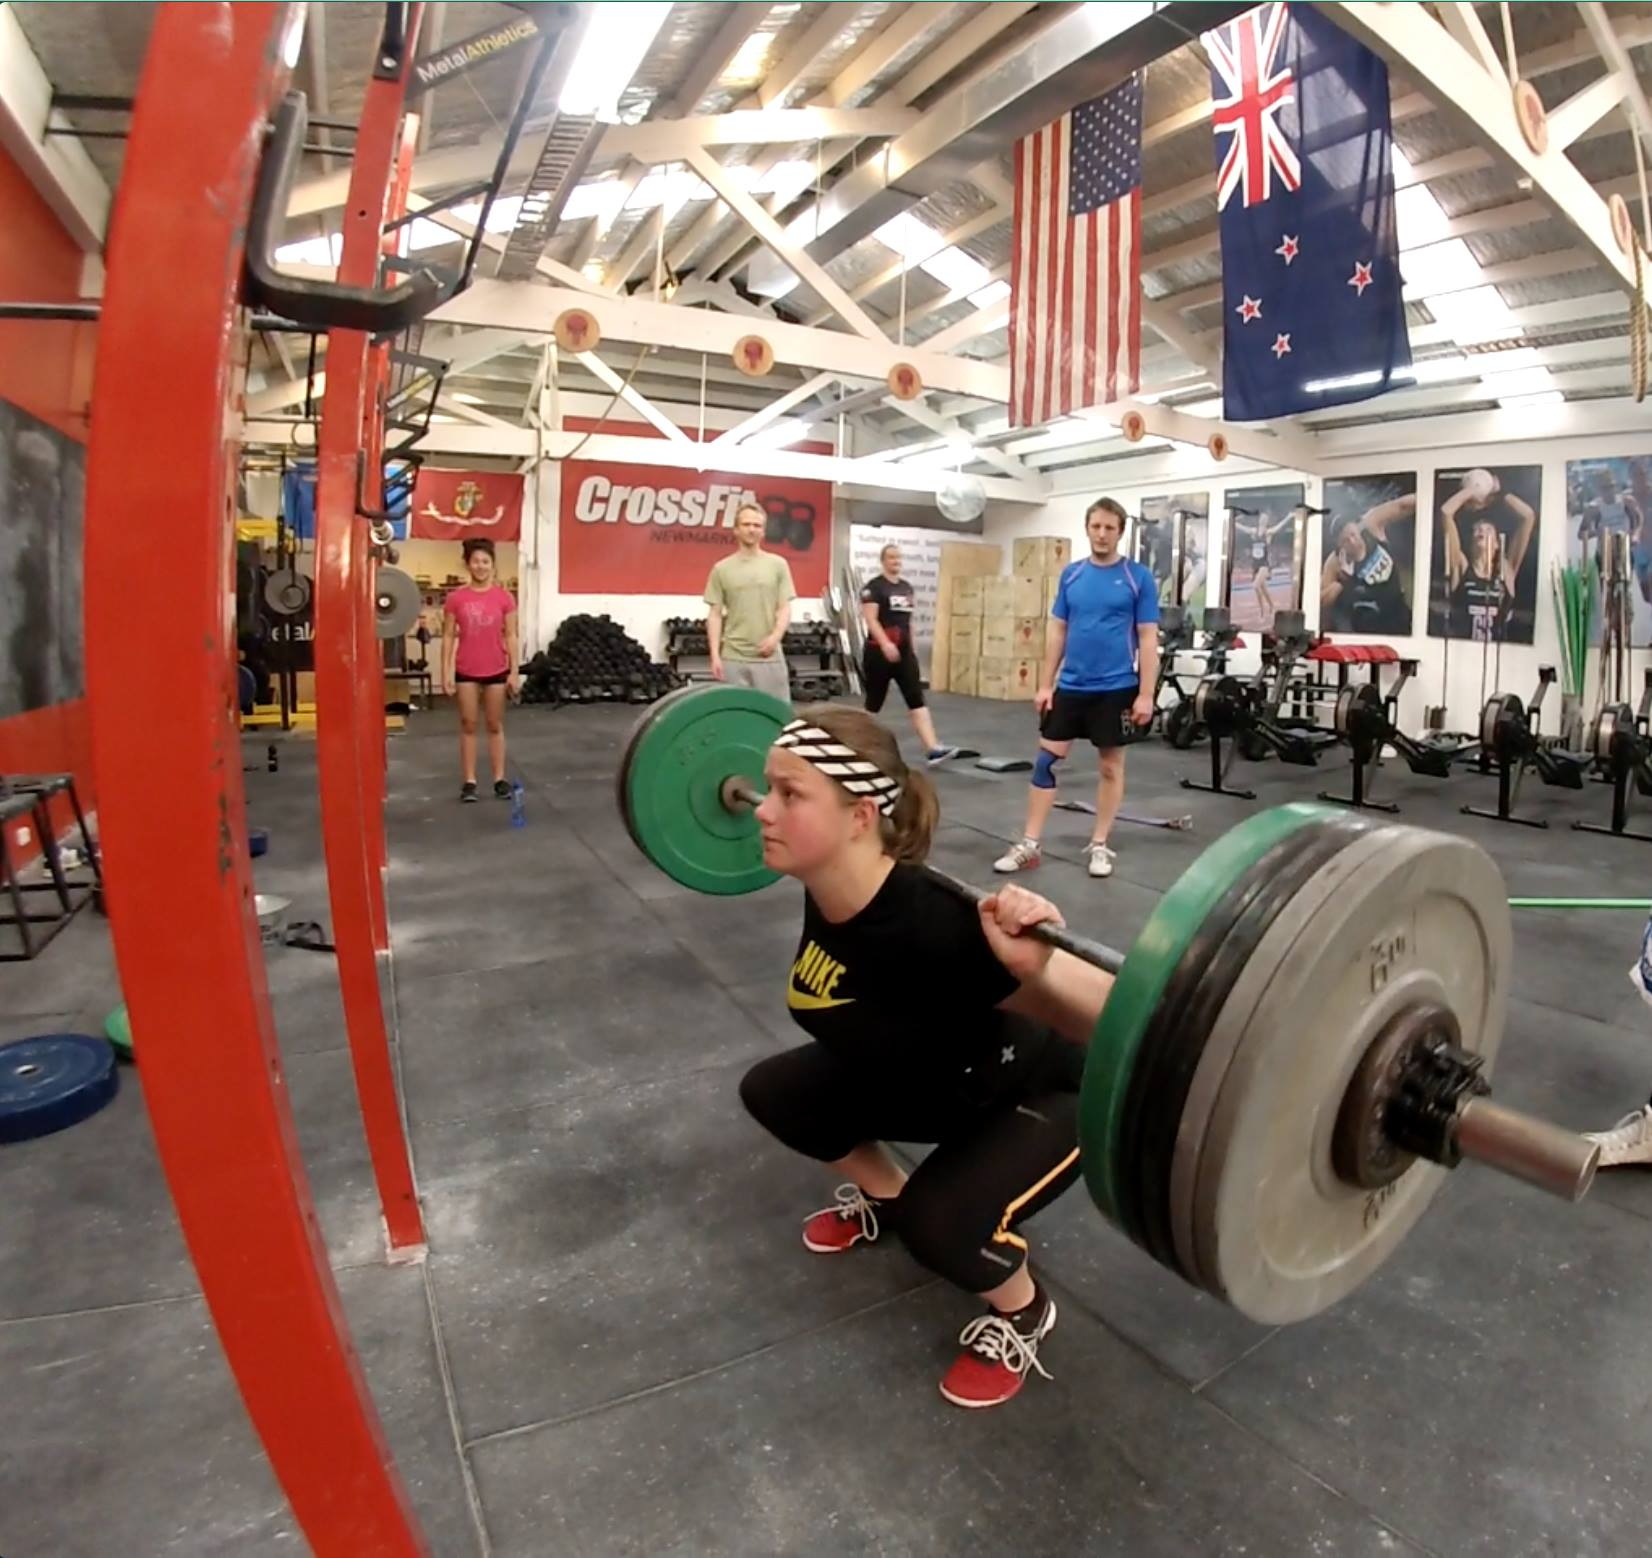 Abbey on the way to an 80 kg back squat in an impressive day with millions of PB's and courageous emotive lifting. Lets all build on the strength we have now and take it to yet another level!